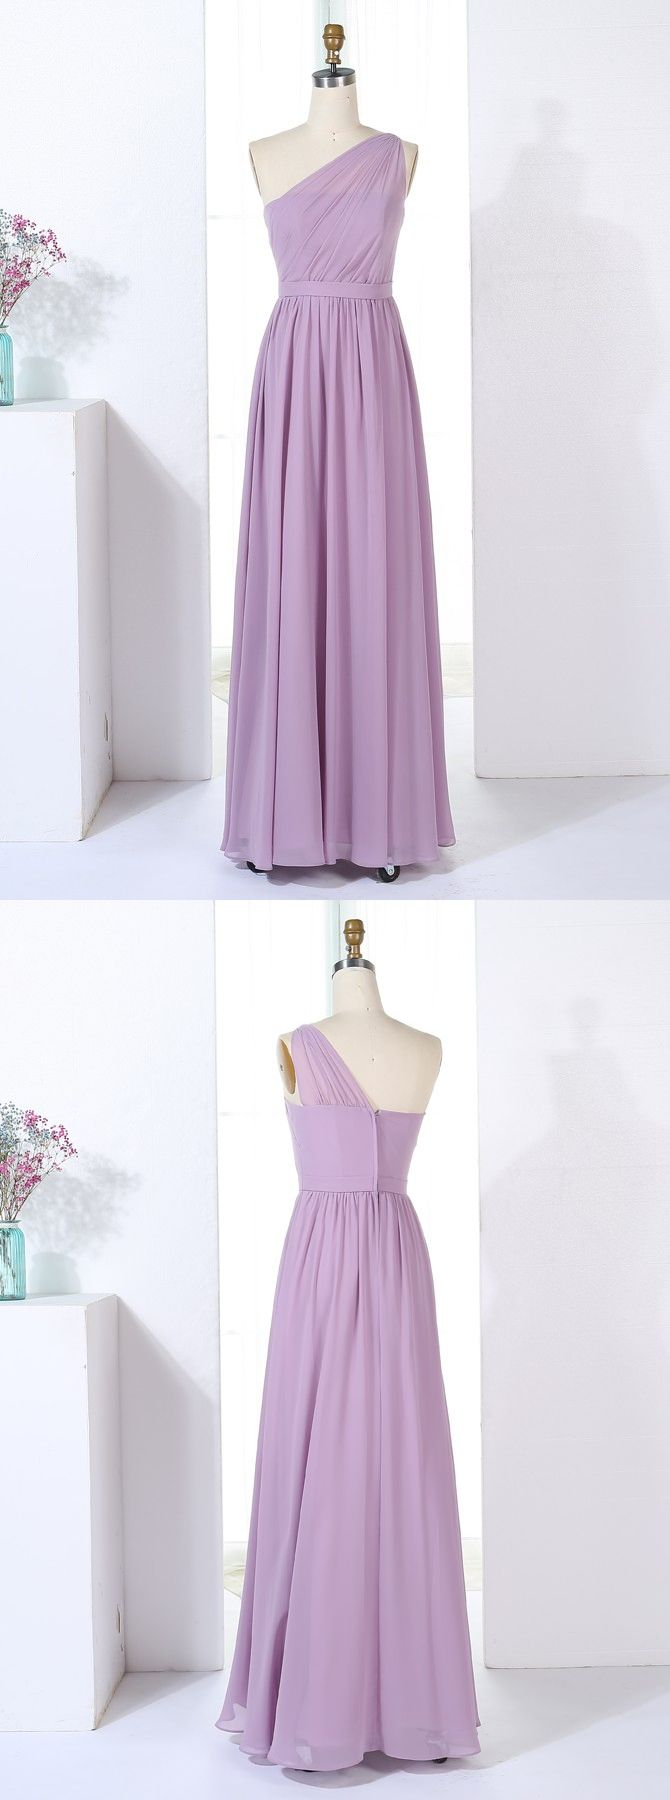 Lavender long bridesmaid dresseselegant one shoulder wedding party